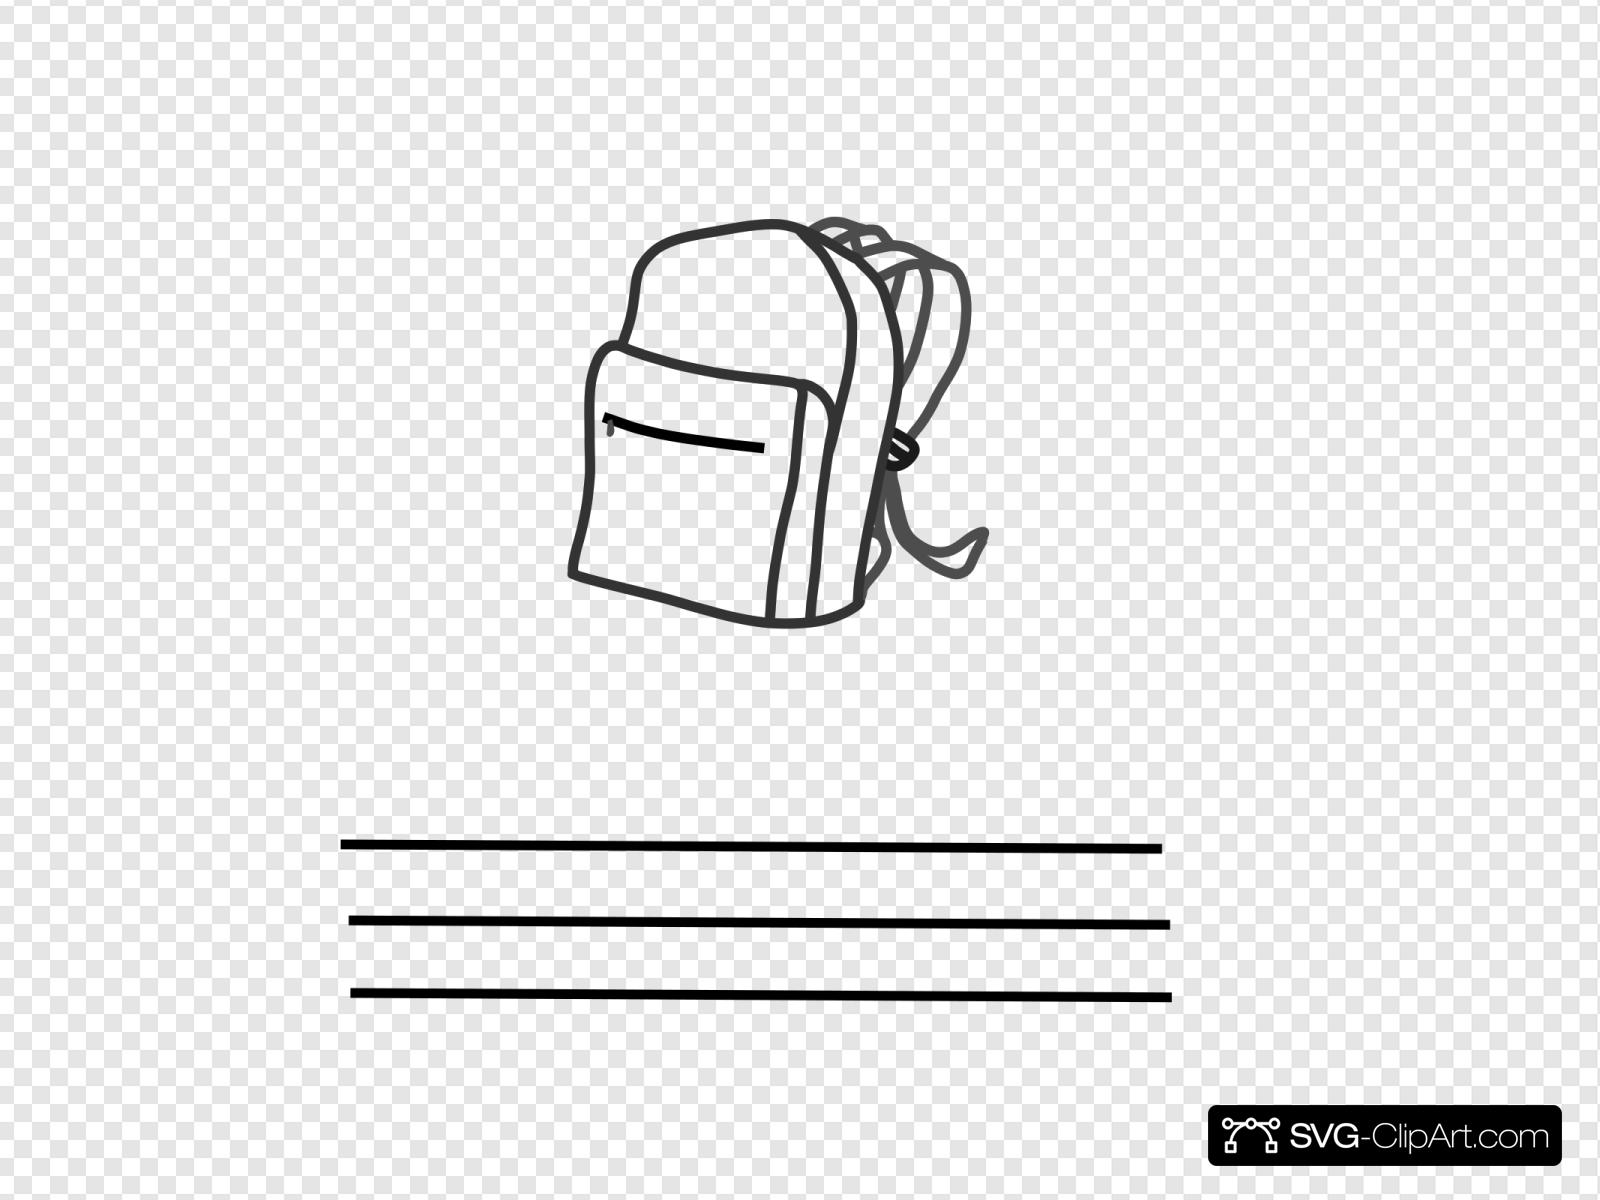 In My Backpack Svg Vector In My Backpack Clip Art